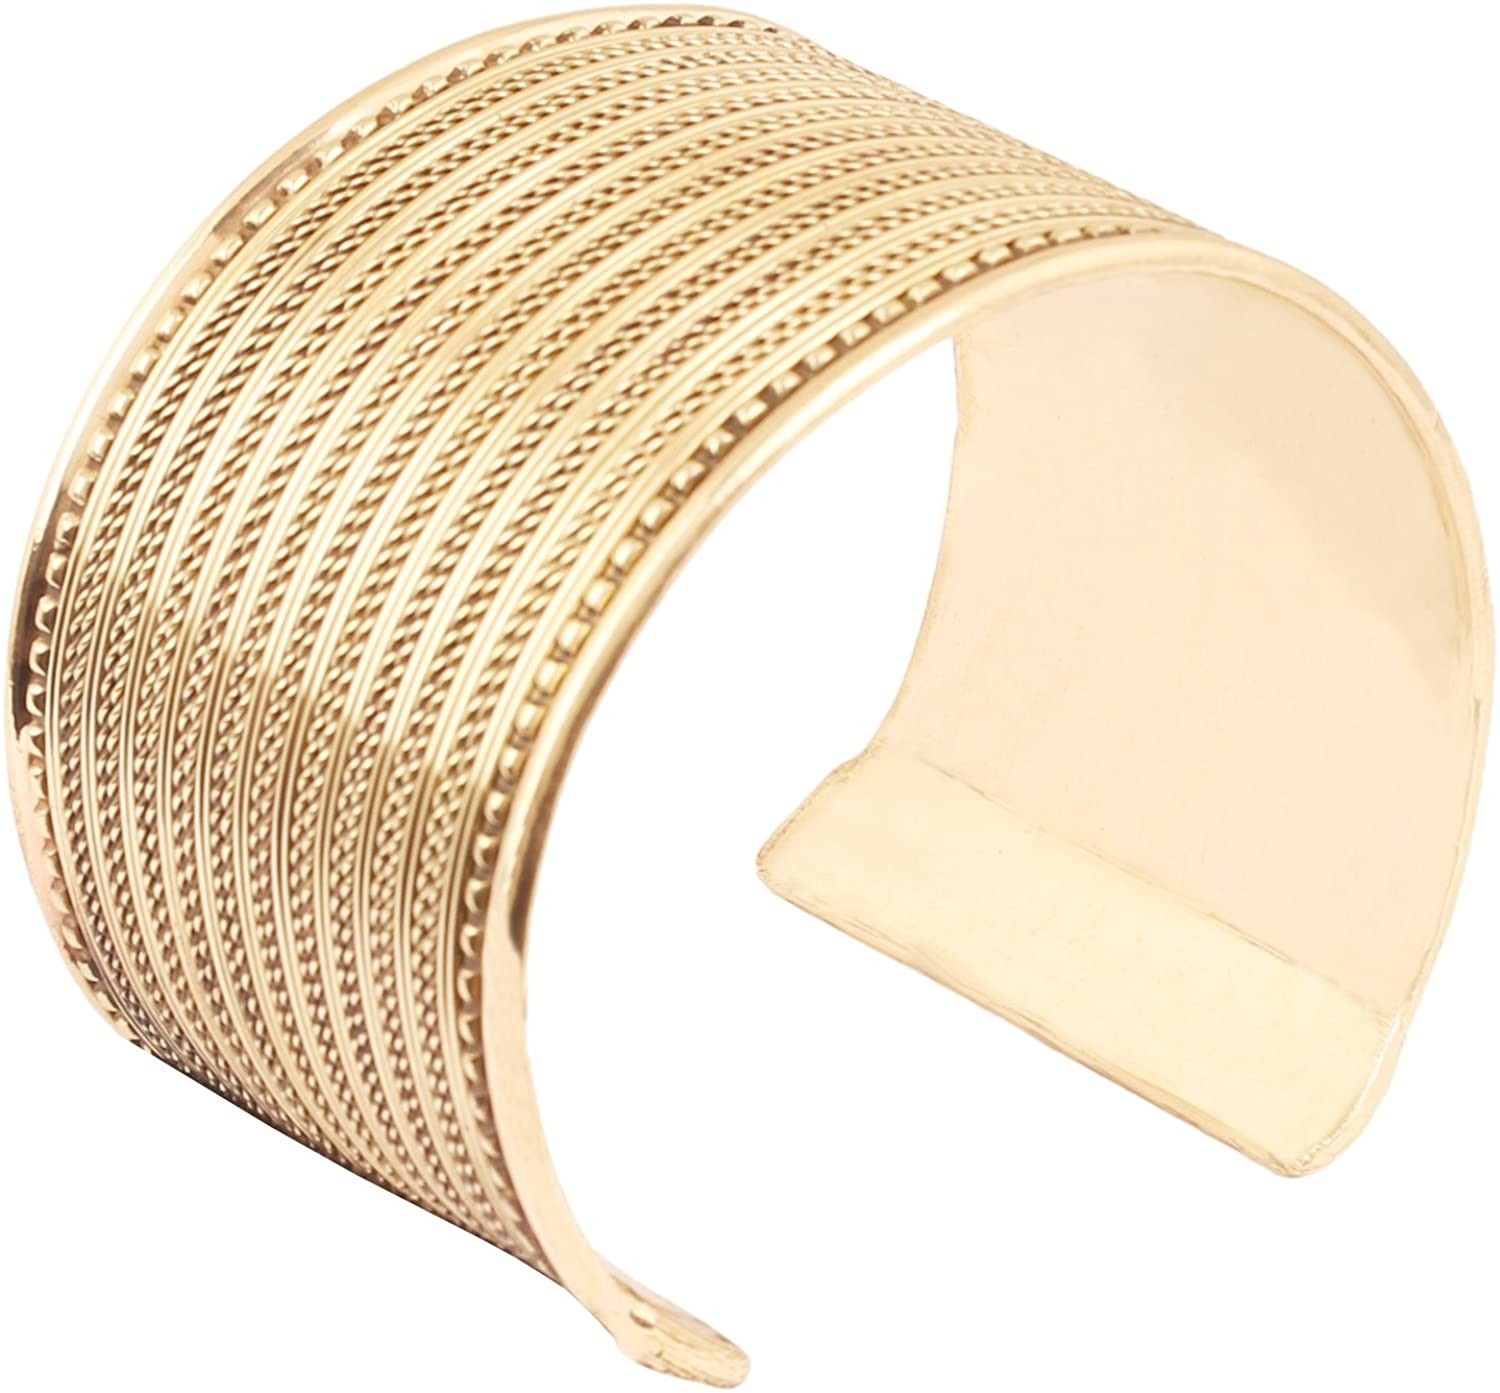 Touchstone Indian Bollywood Desire Brass Handcrafted Hammered Stylish Look Thick Wrist Enhancer Designer Jewelry Cuff Bracelet in Antique for Women